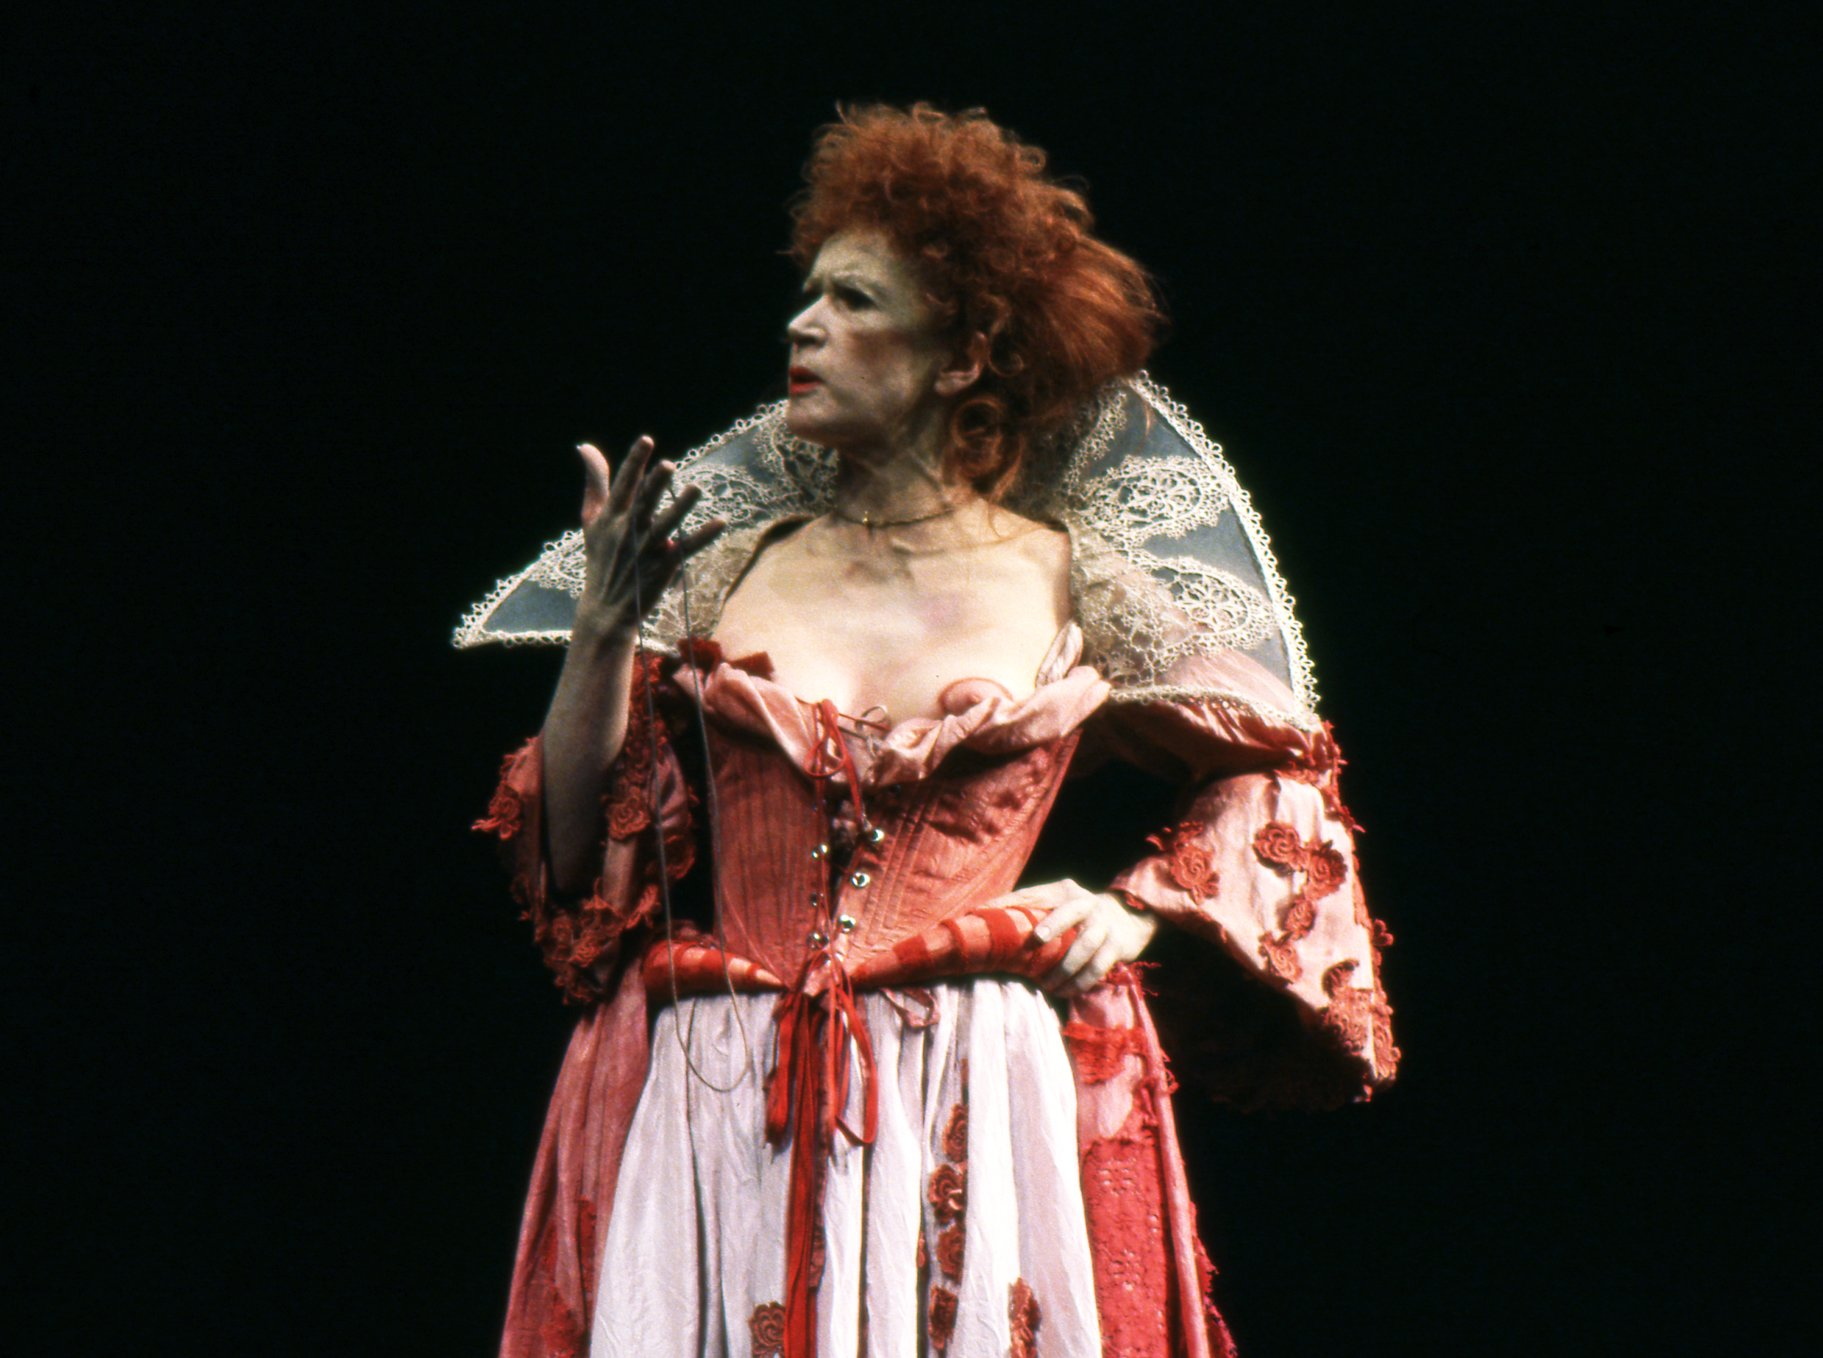 An older woman in a revealing red dress with heavy makeup.